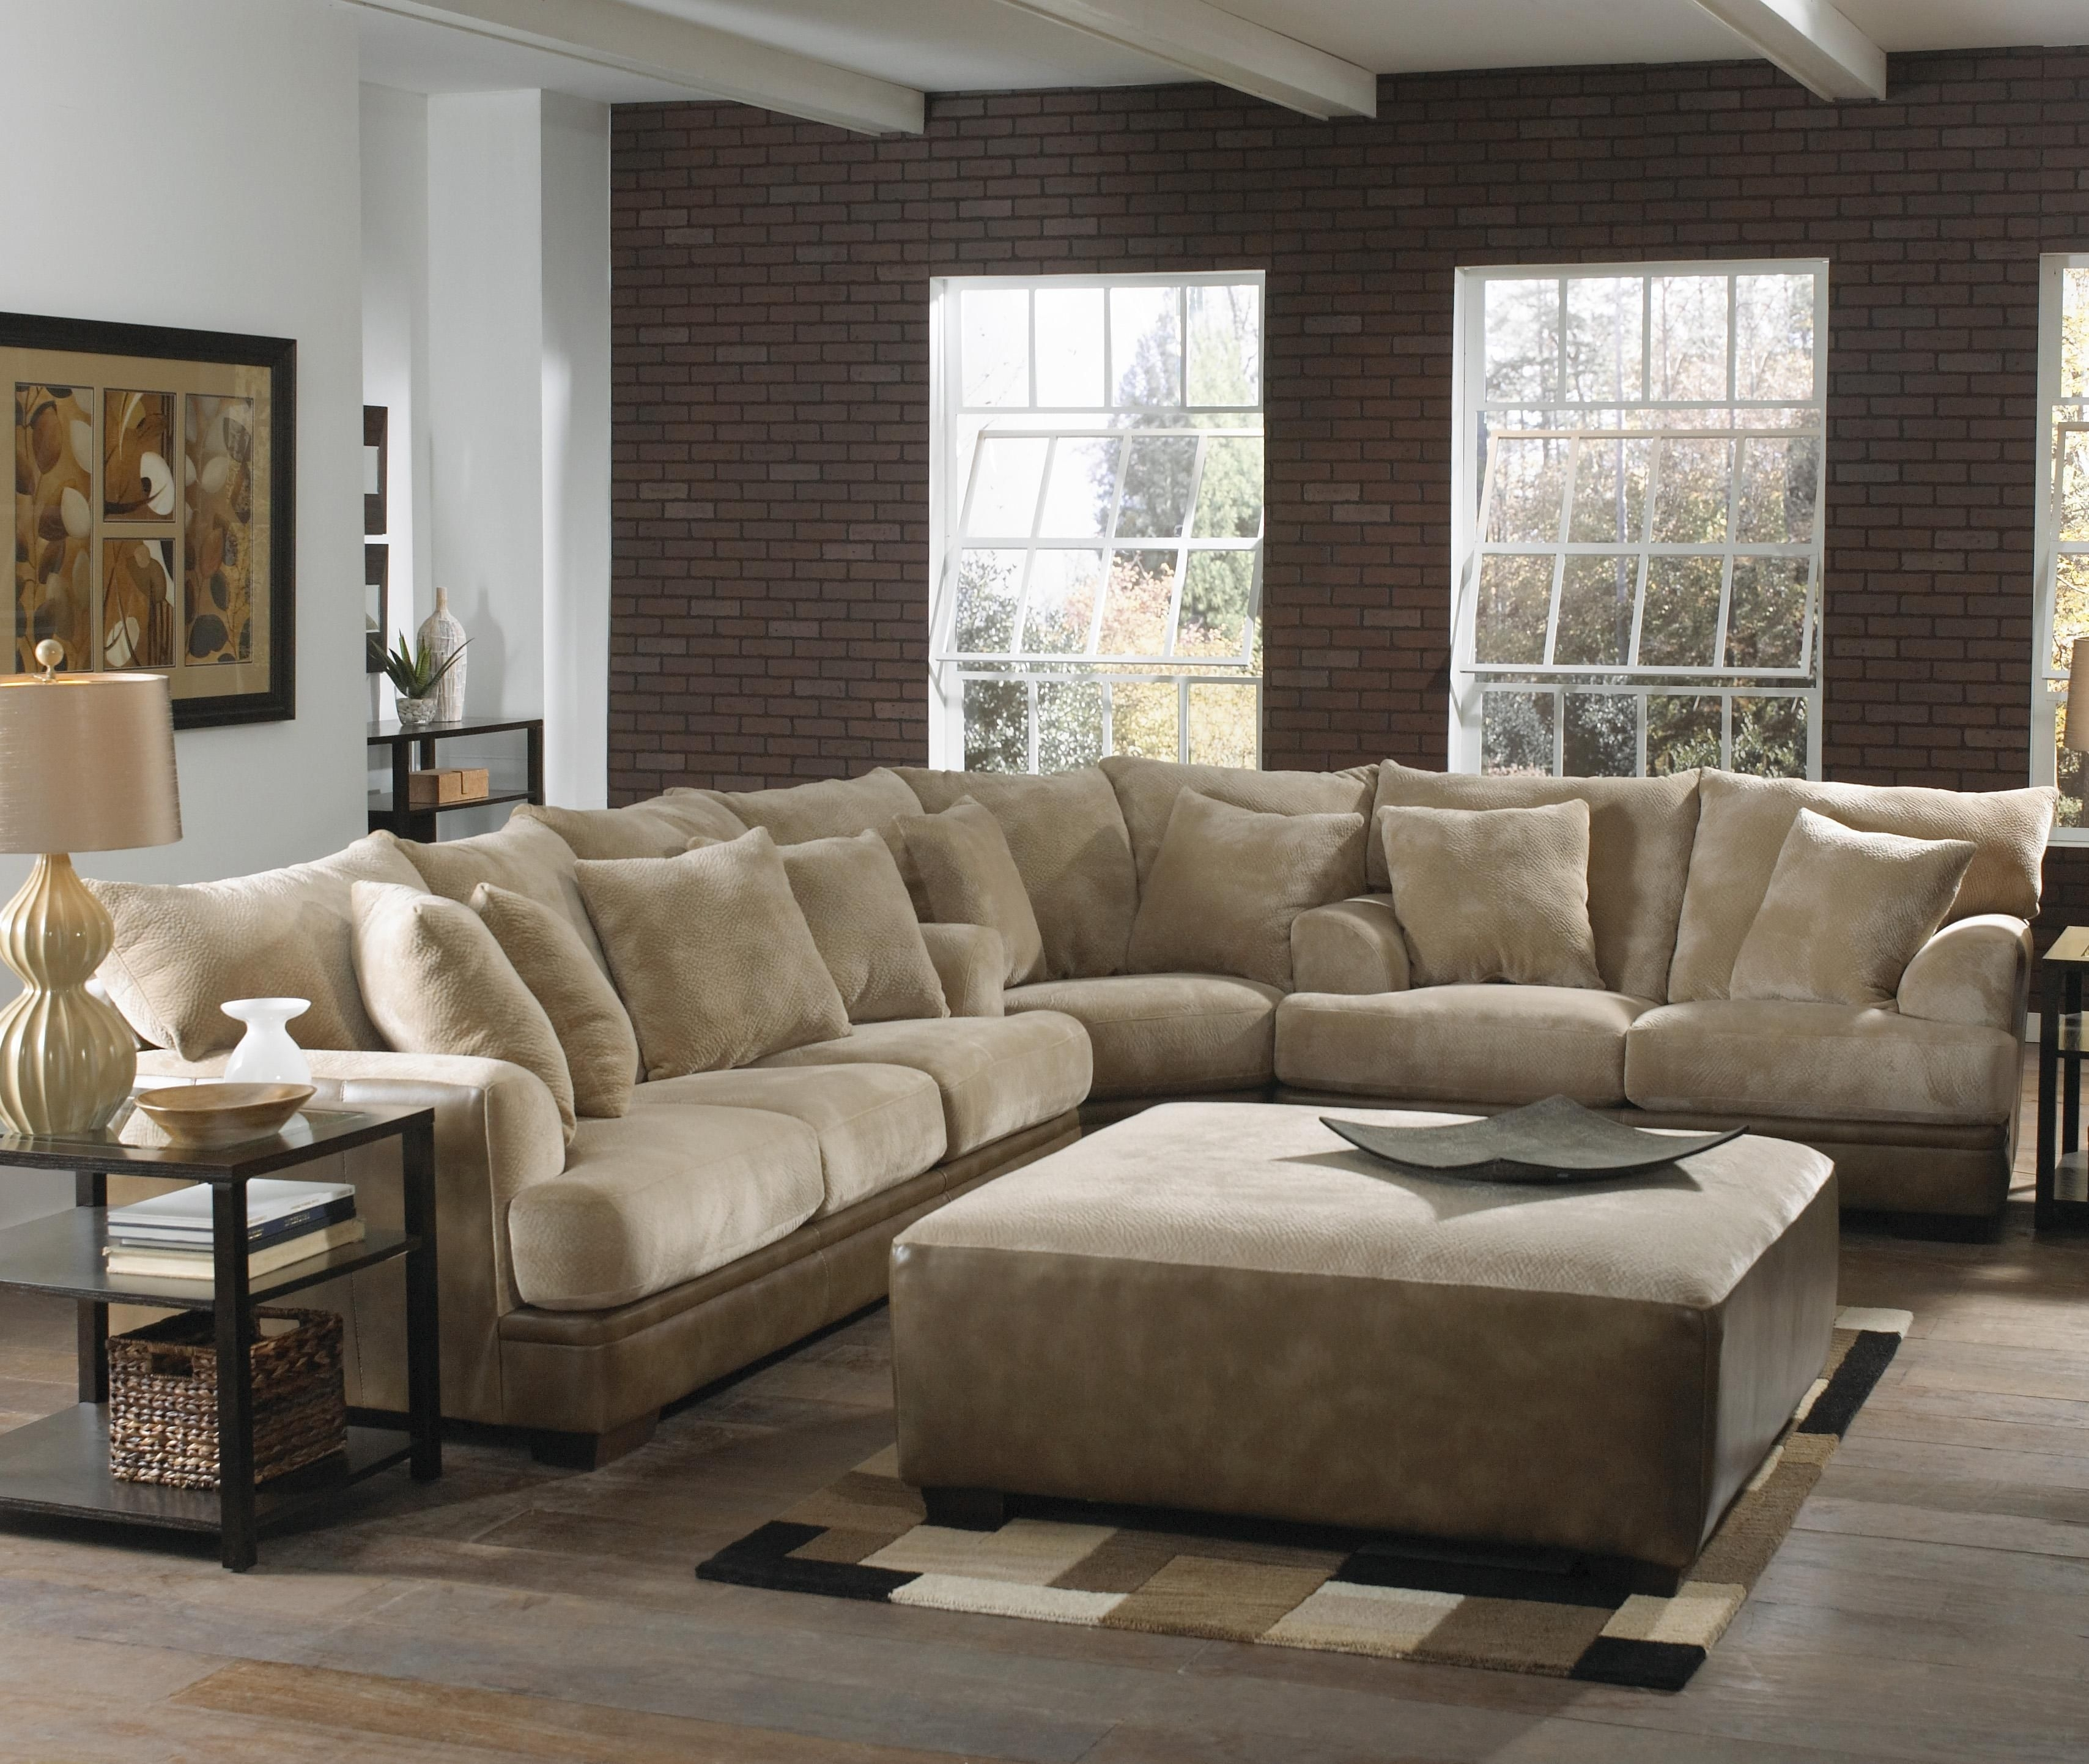 Barkley Large L Shaped Sectional Sofa With Right Side Loveseat Throughout East Bay Sectional Sofas (View 2 of 10)